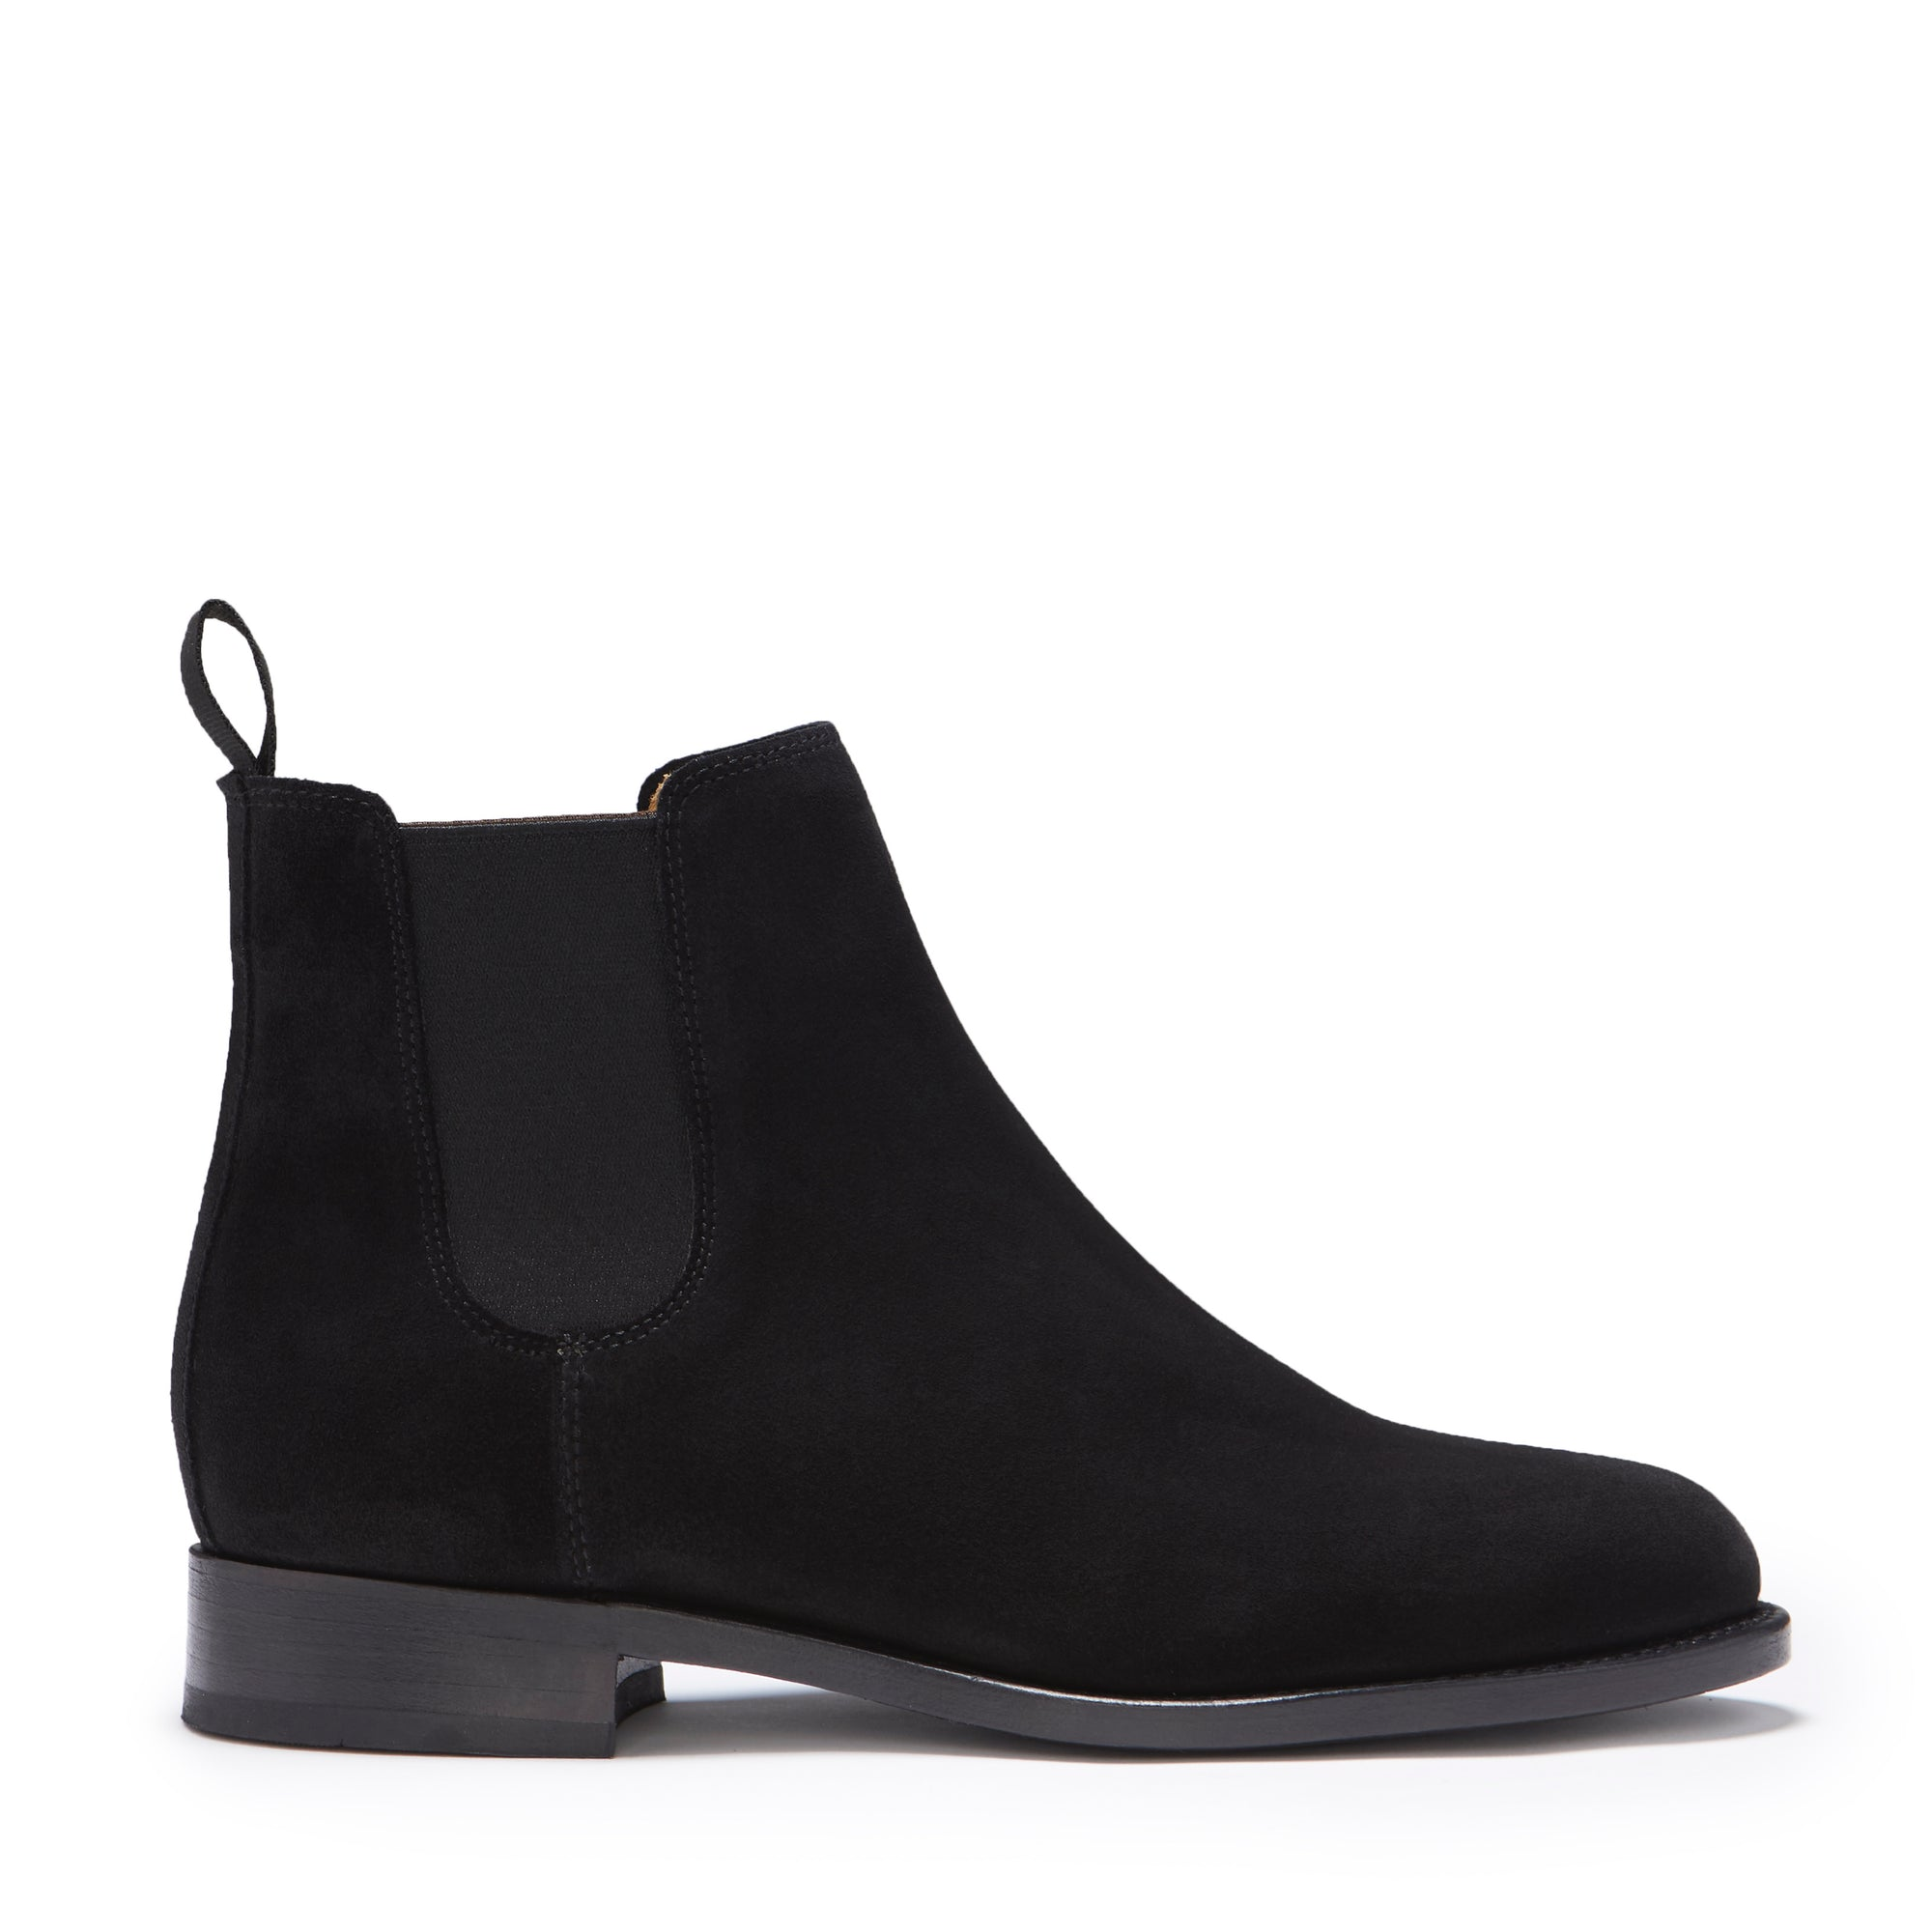 eb56ed8e39ba9 Recently Viewed. Women s Black Suede Chelsea Boots ...